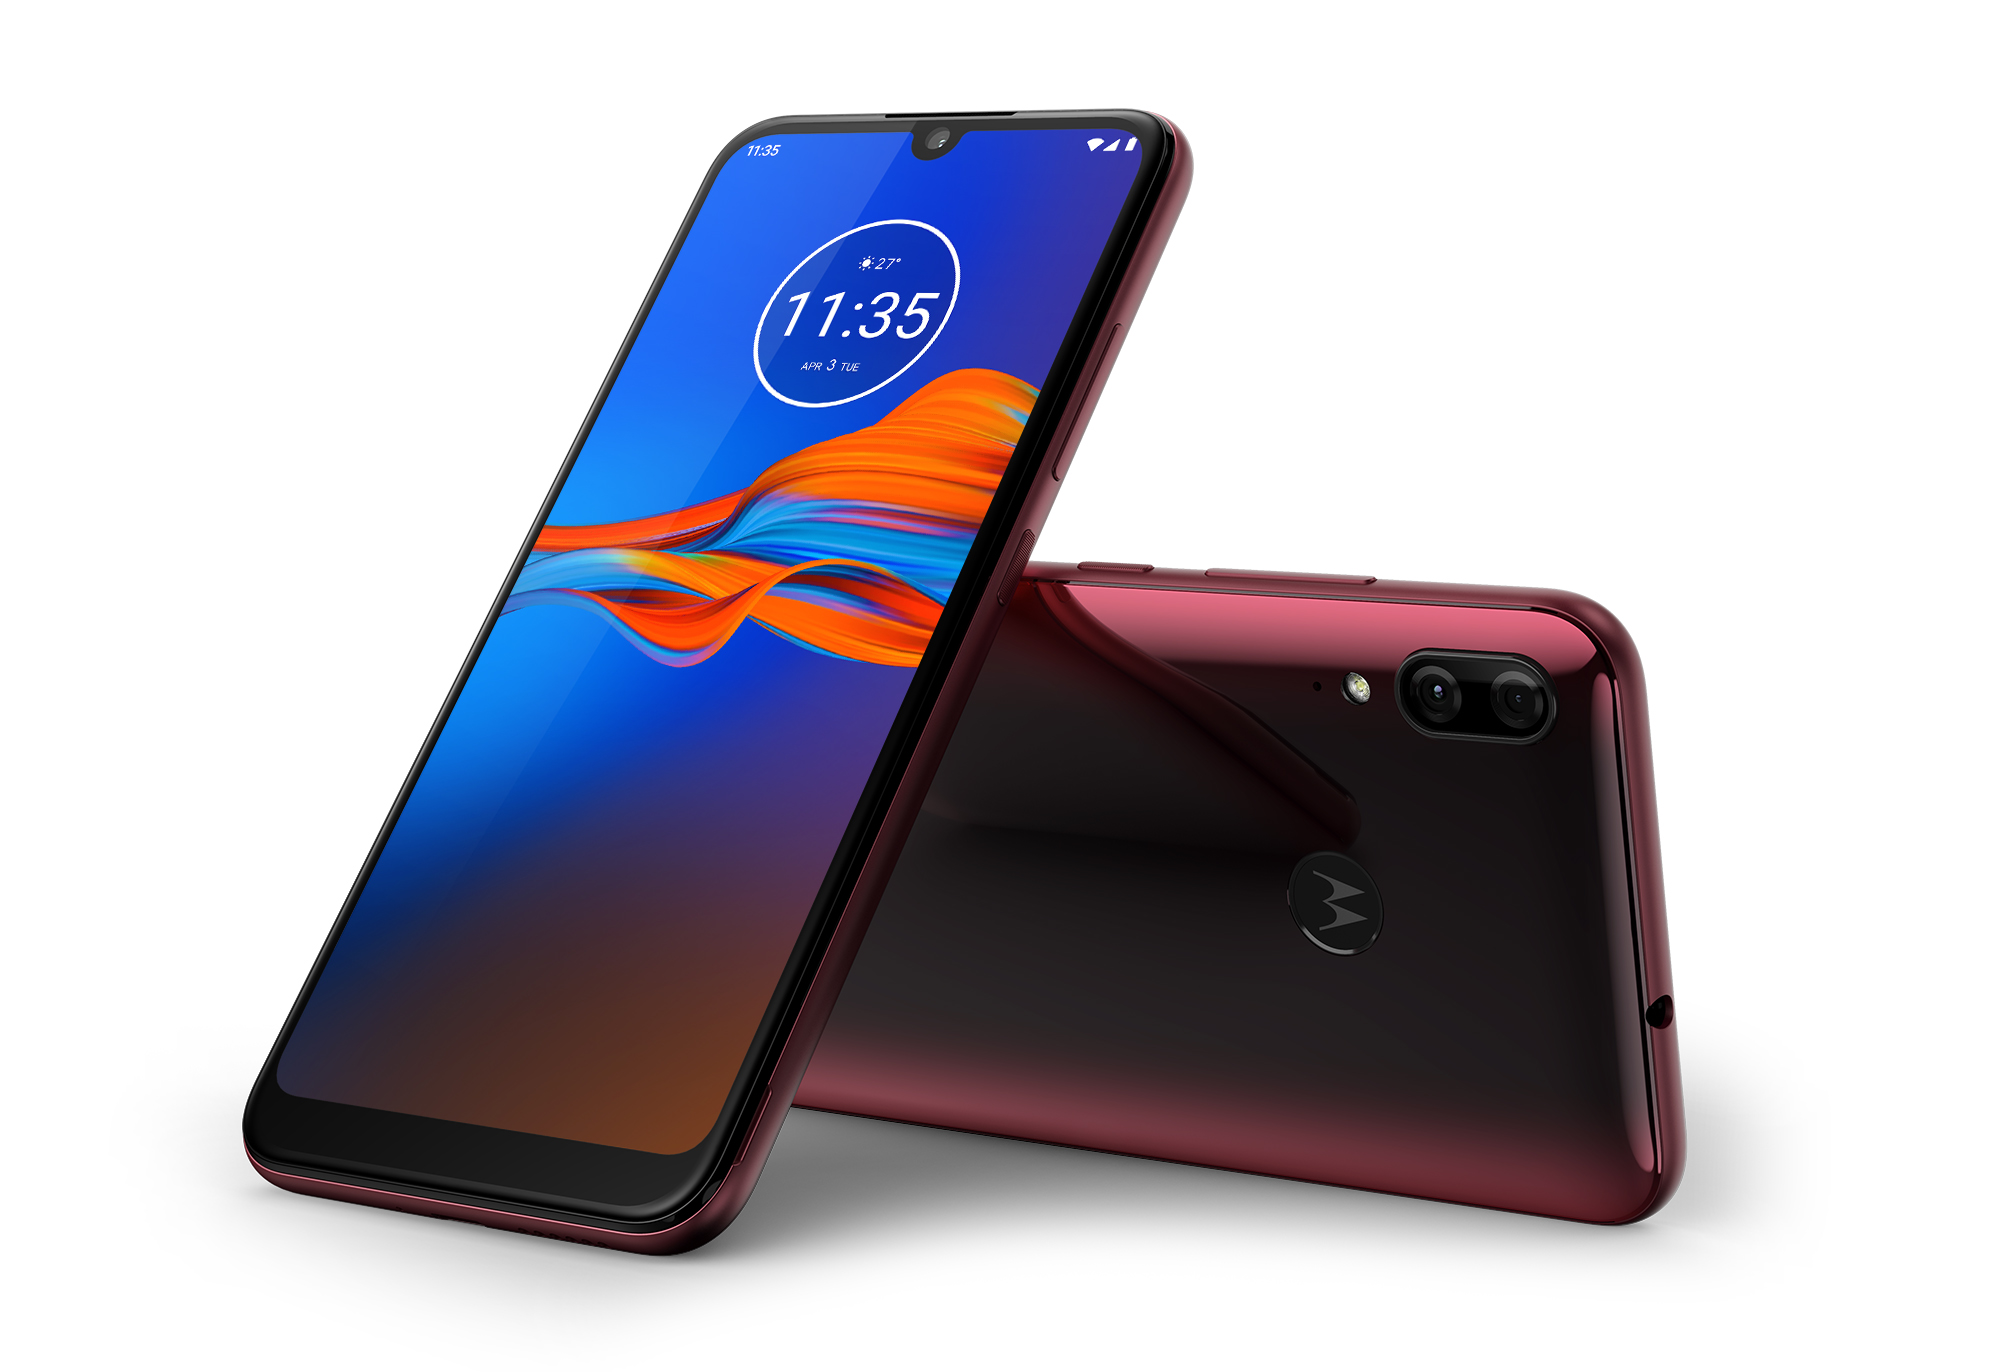 The Moto E6 Plus is official with display notch and MediaTek chip